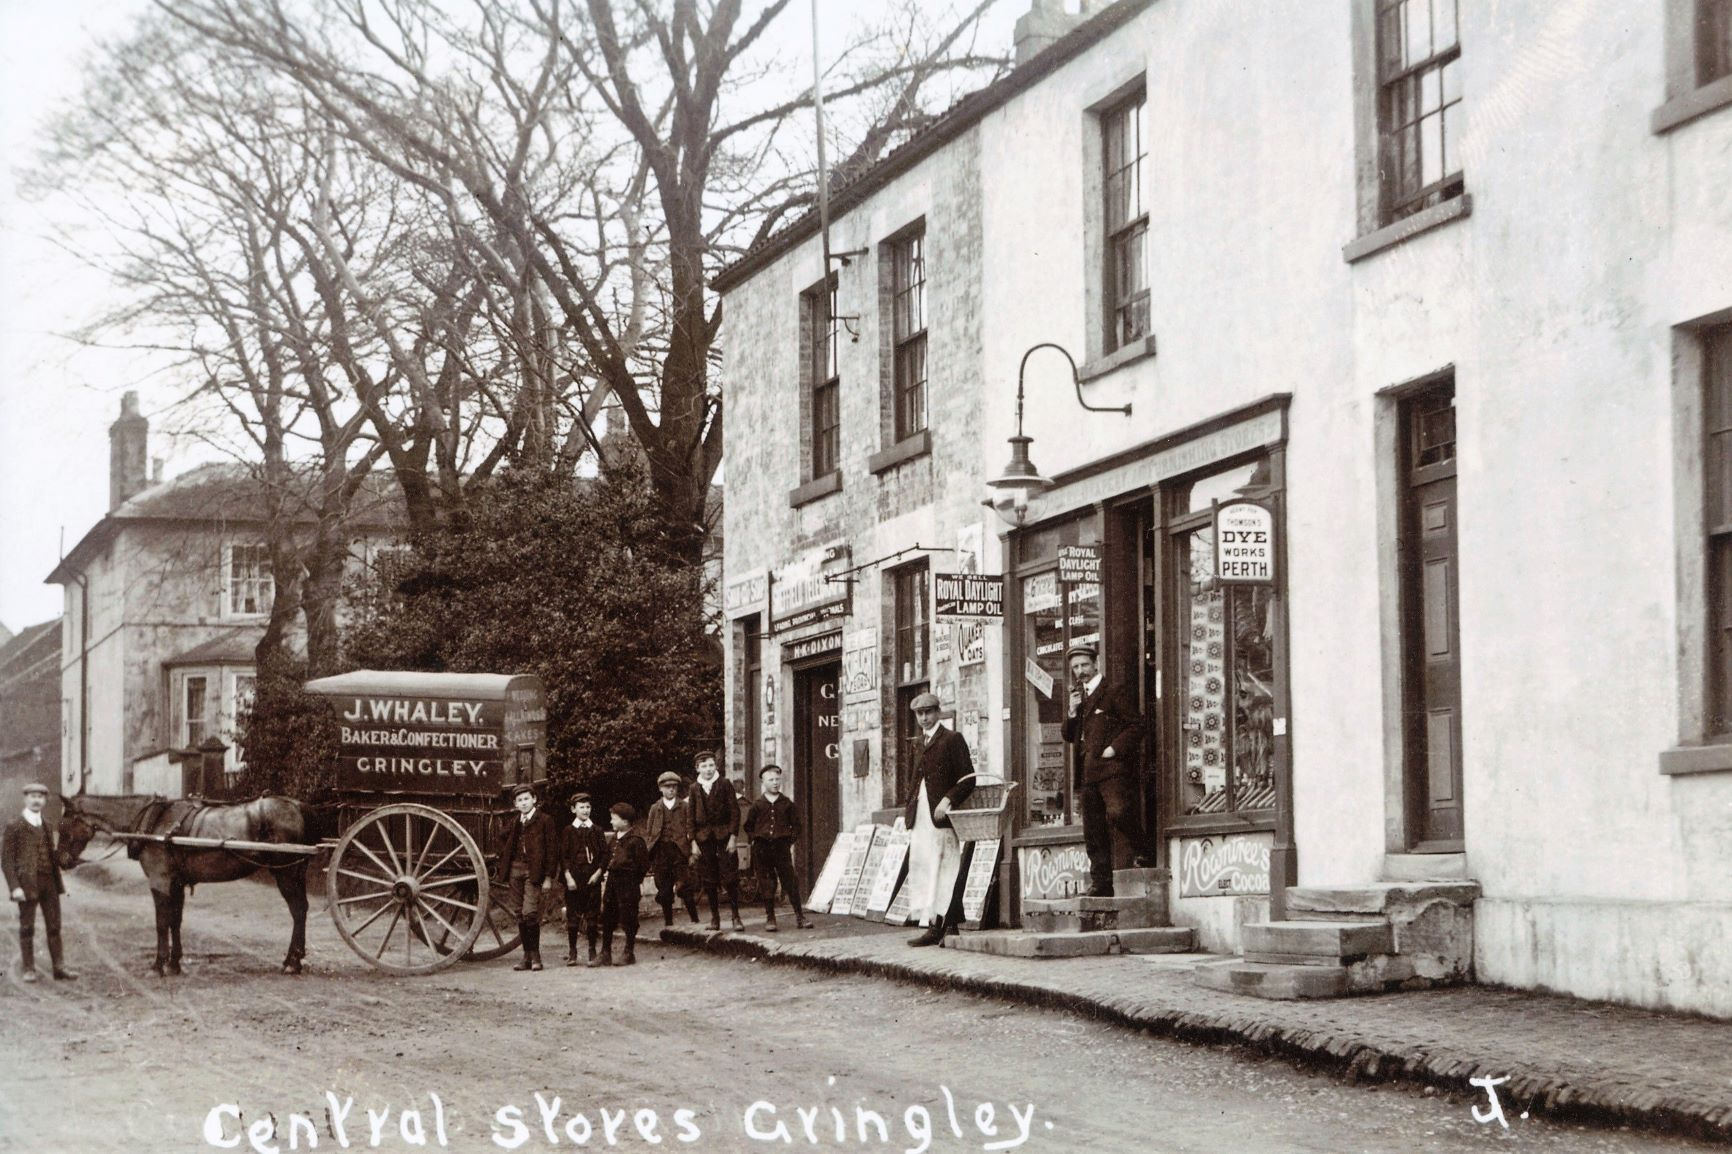 Gringley Central Stores Risgewood House version 2c1900 2